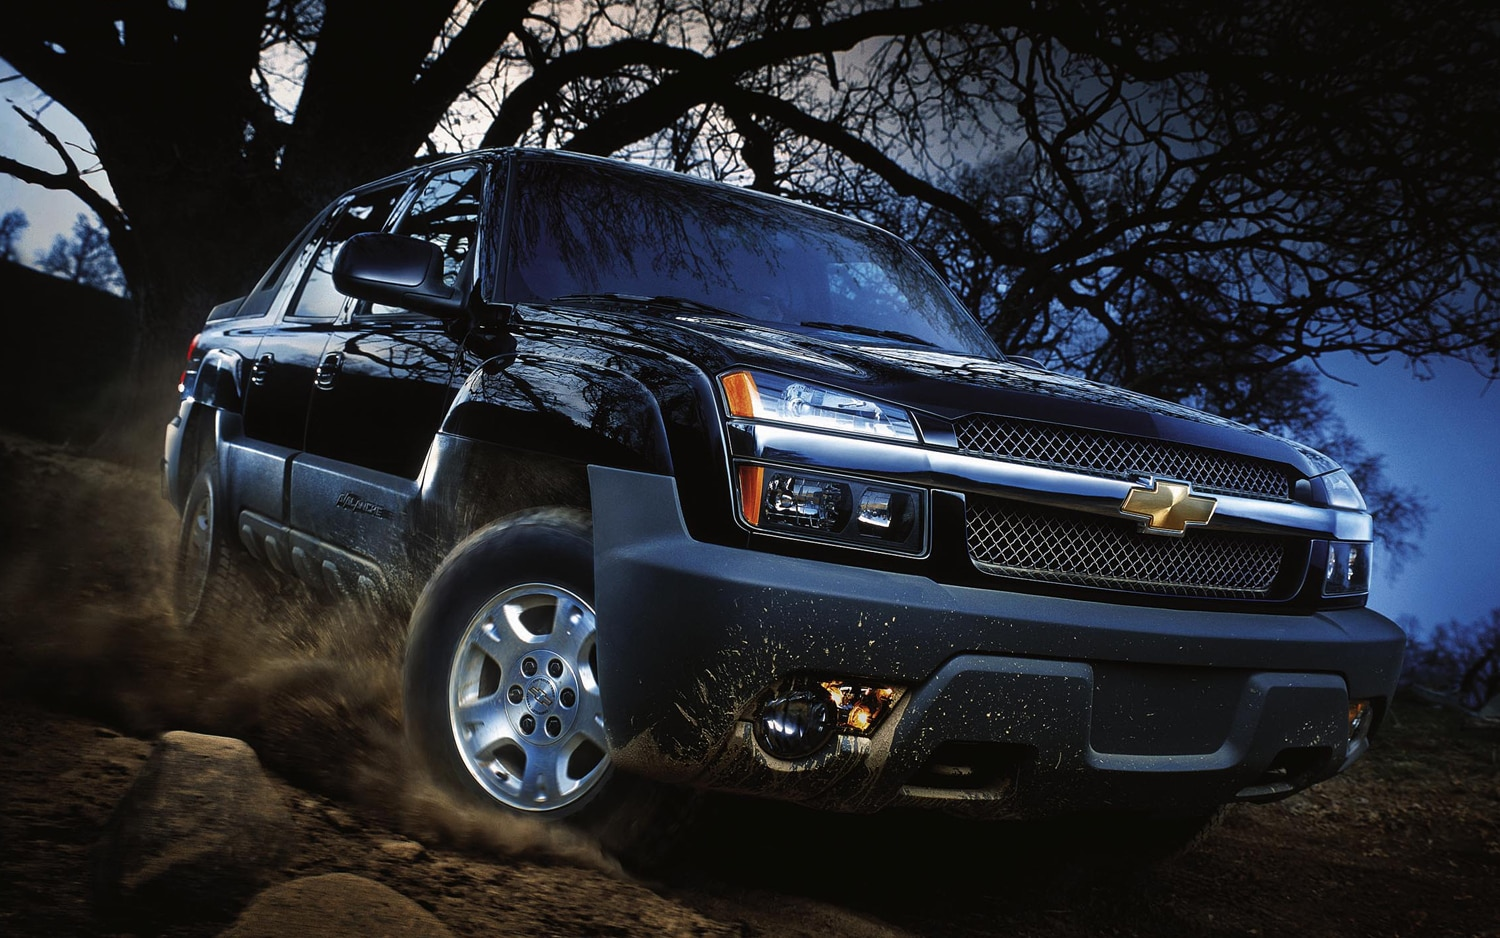 medium resolution of 2002 chevrolet avalanche 1500 front body parts diagram auto parts 2002 2013 chevrolet avalanche timeline truck